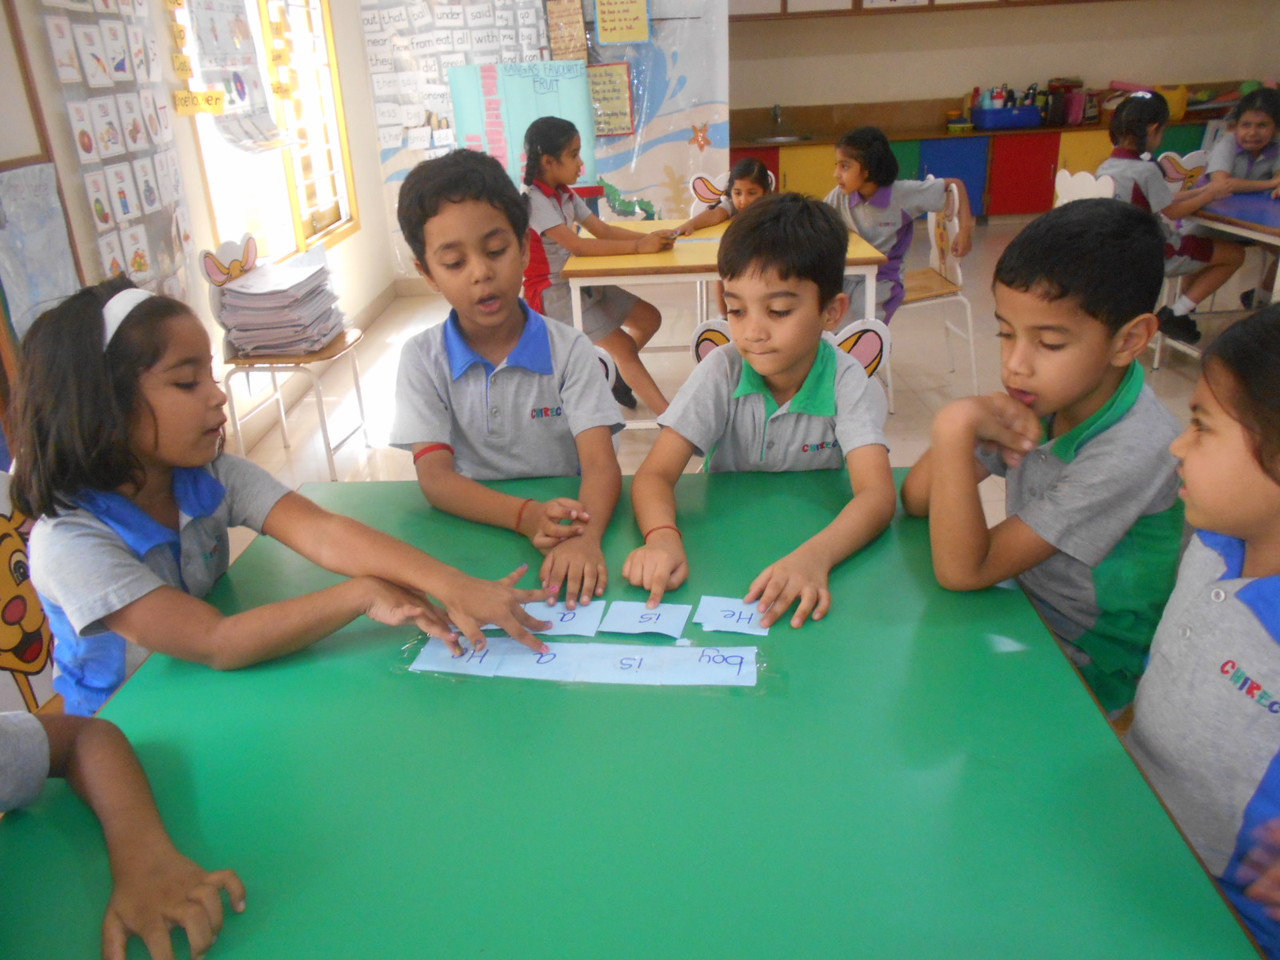 DEVELOPING LITERACY SKILLS - RE-ARRANGING WORDS TO FORM A CORRECT SENTENCE (6)